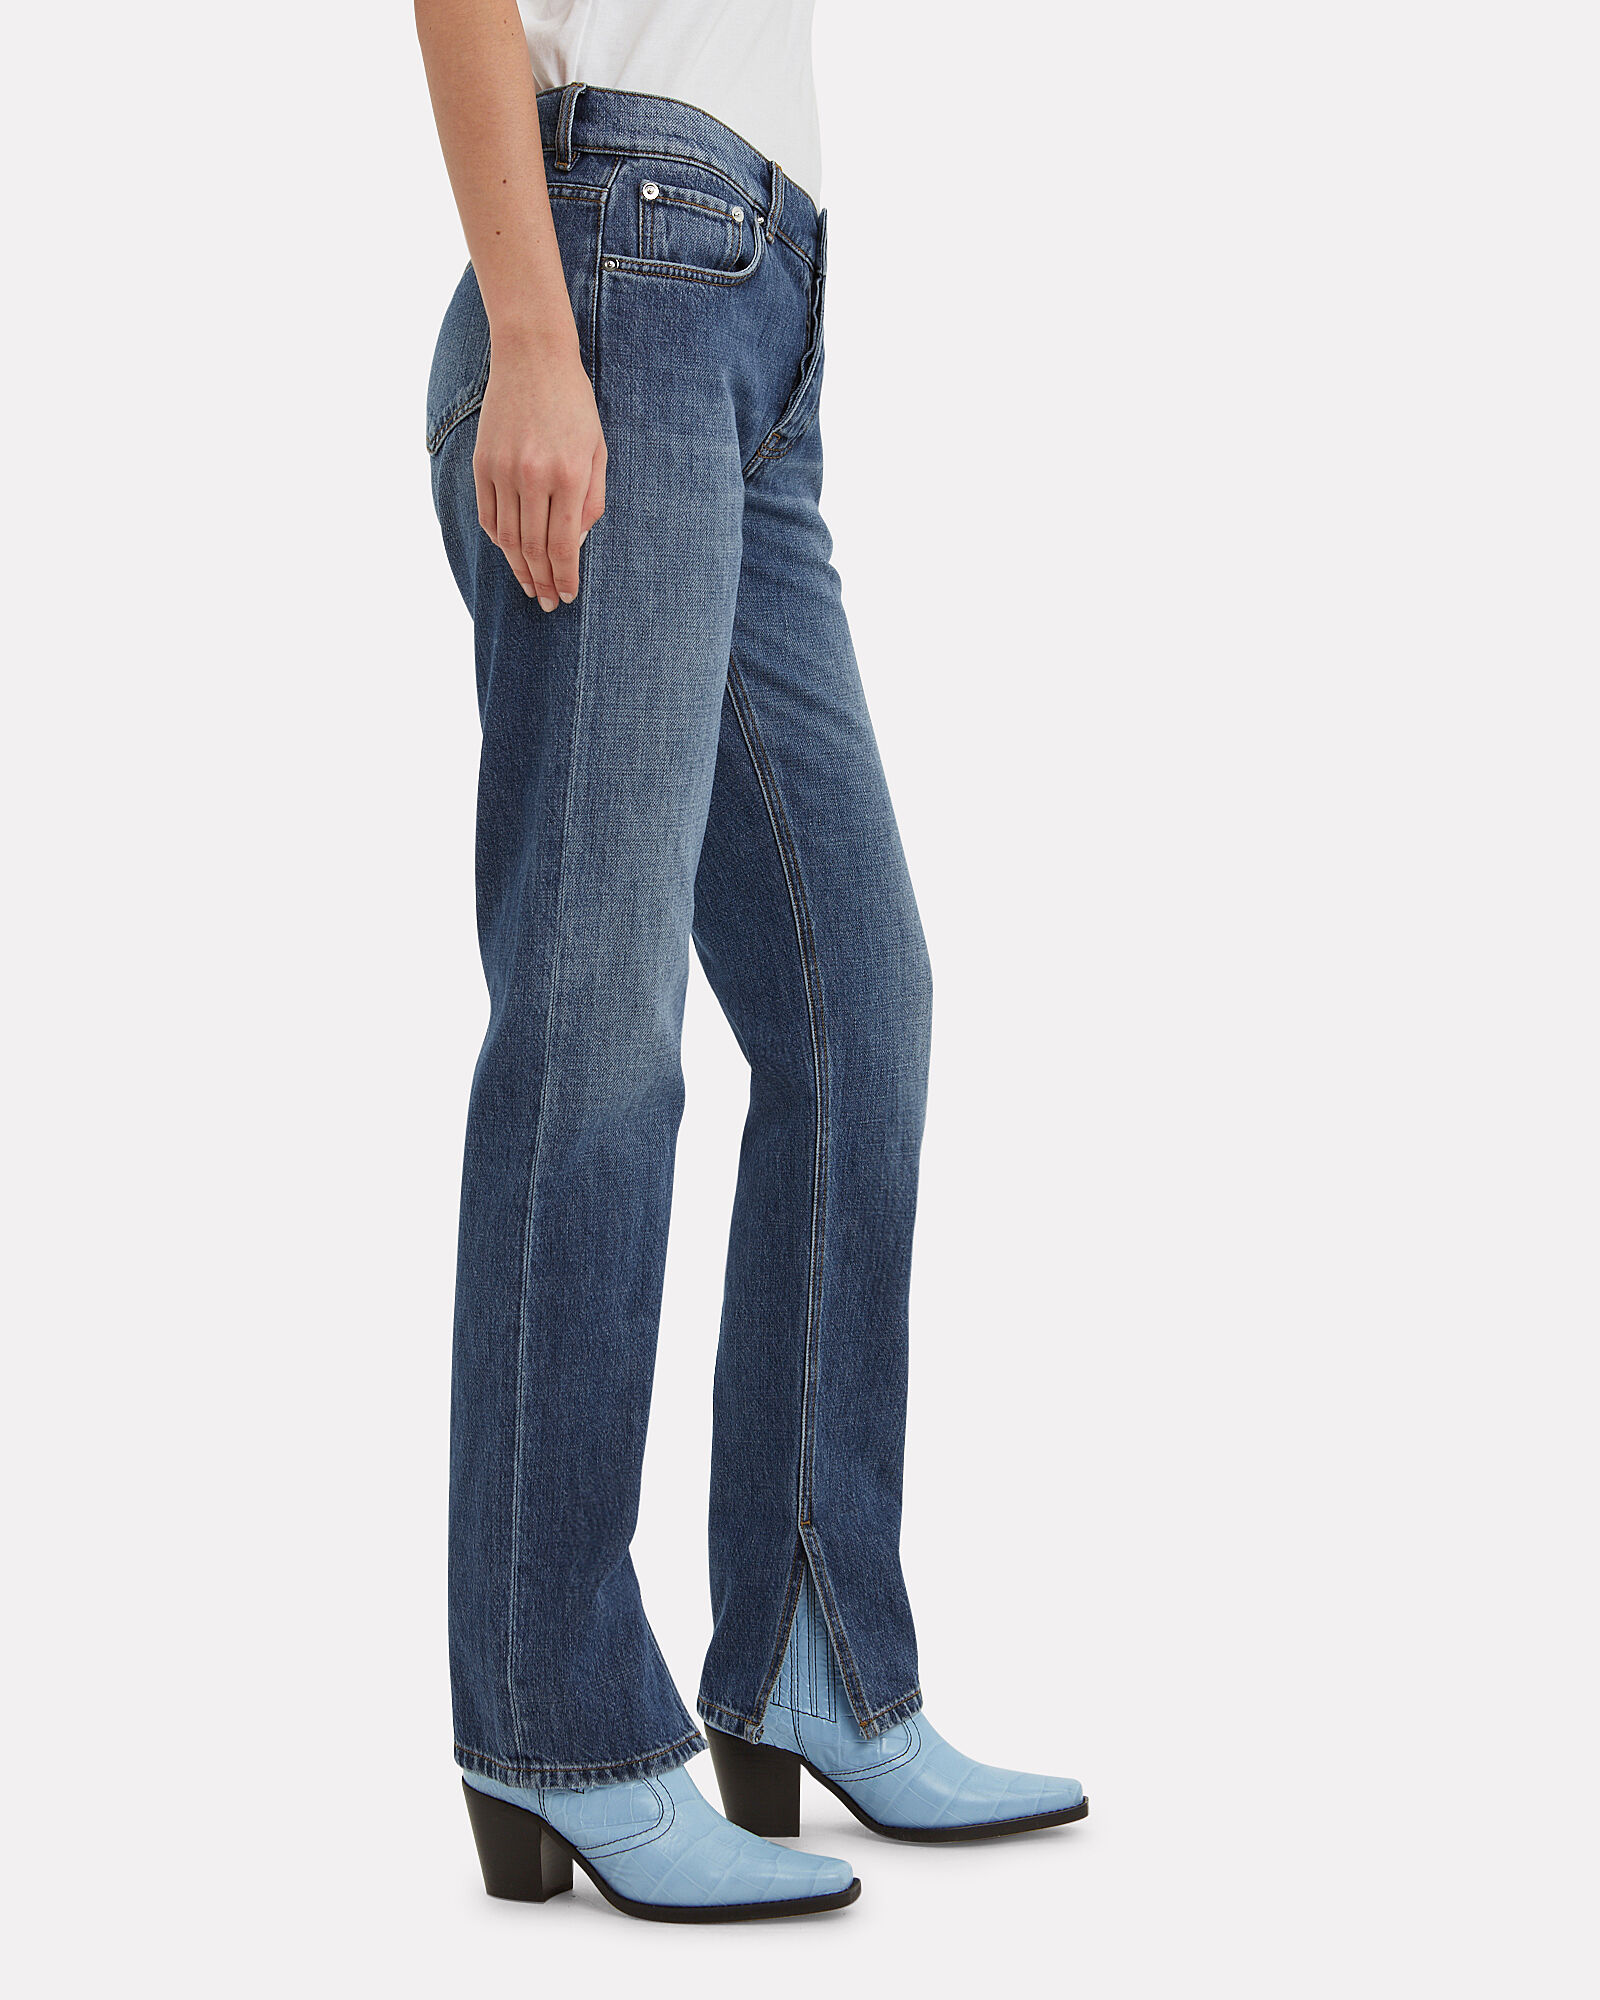 Overdyed Straight Leg Jeans, DENIM-DRK, hi-res